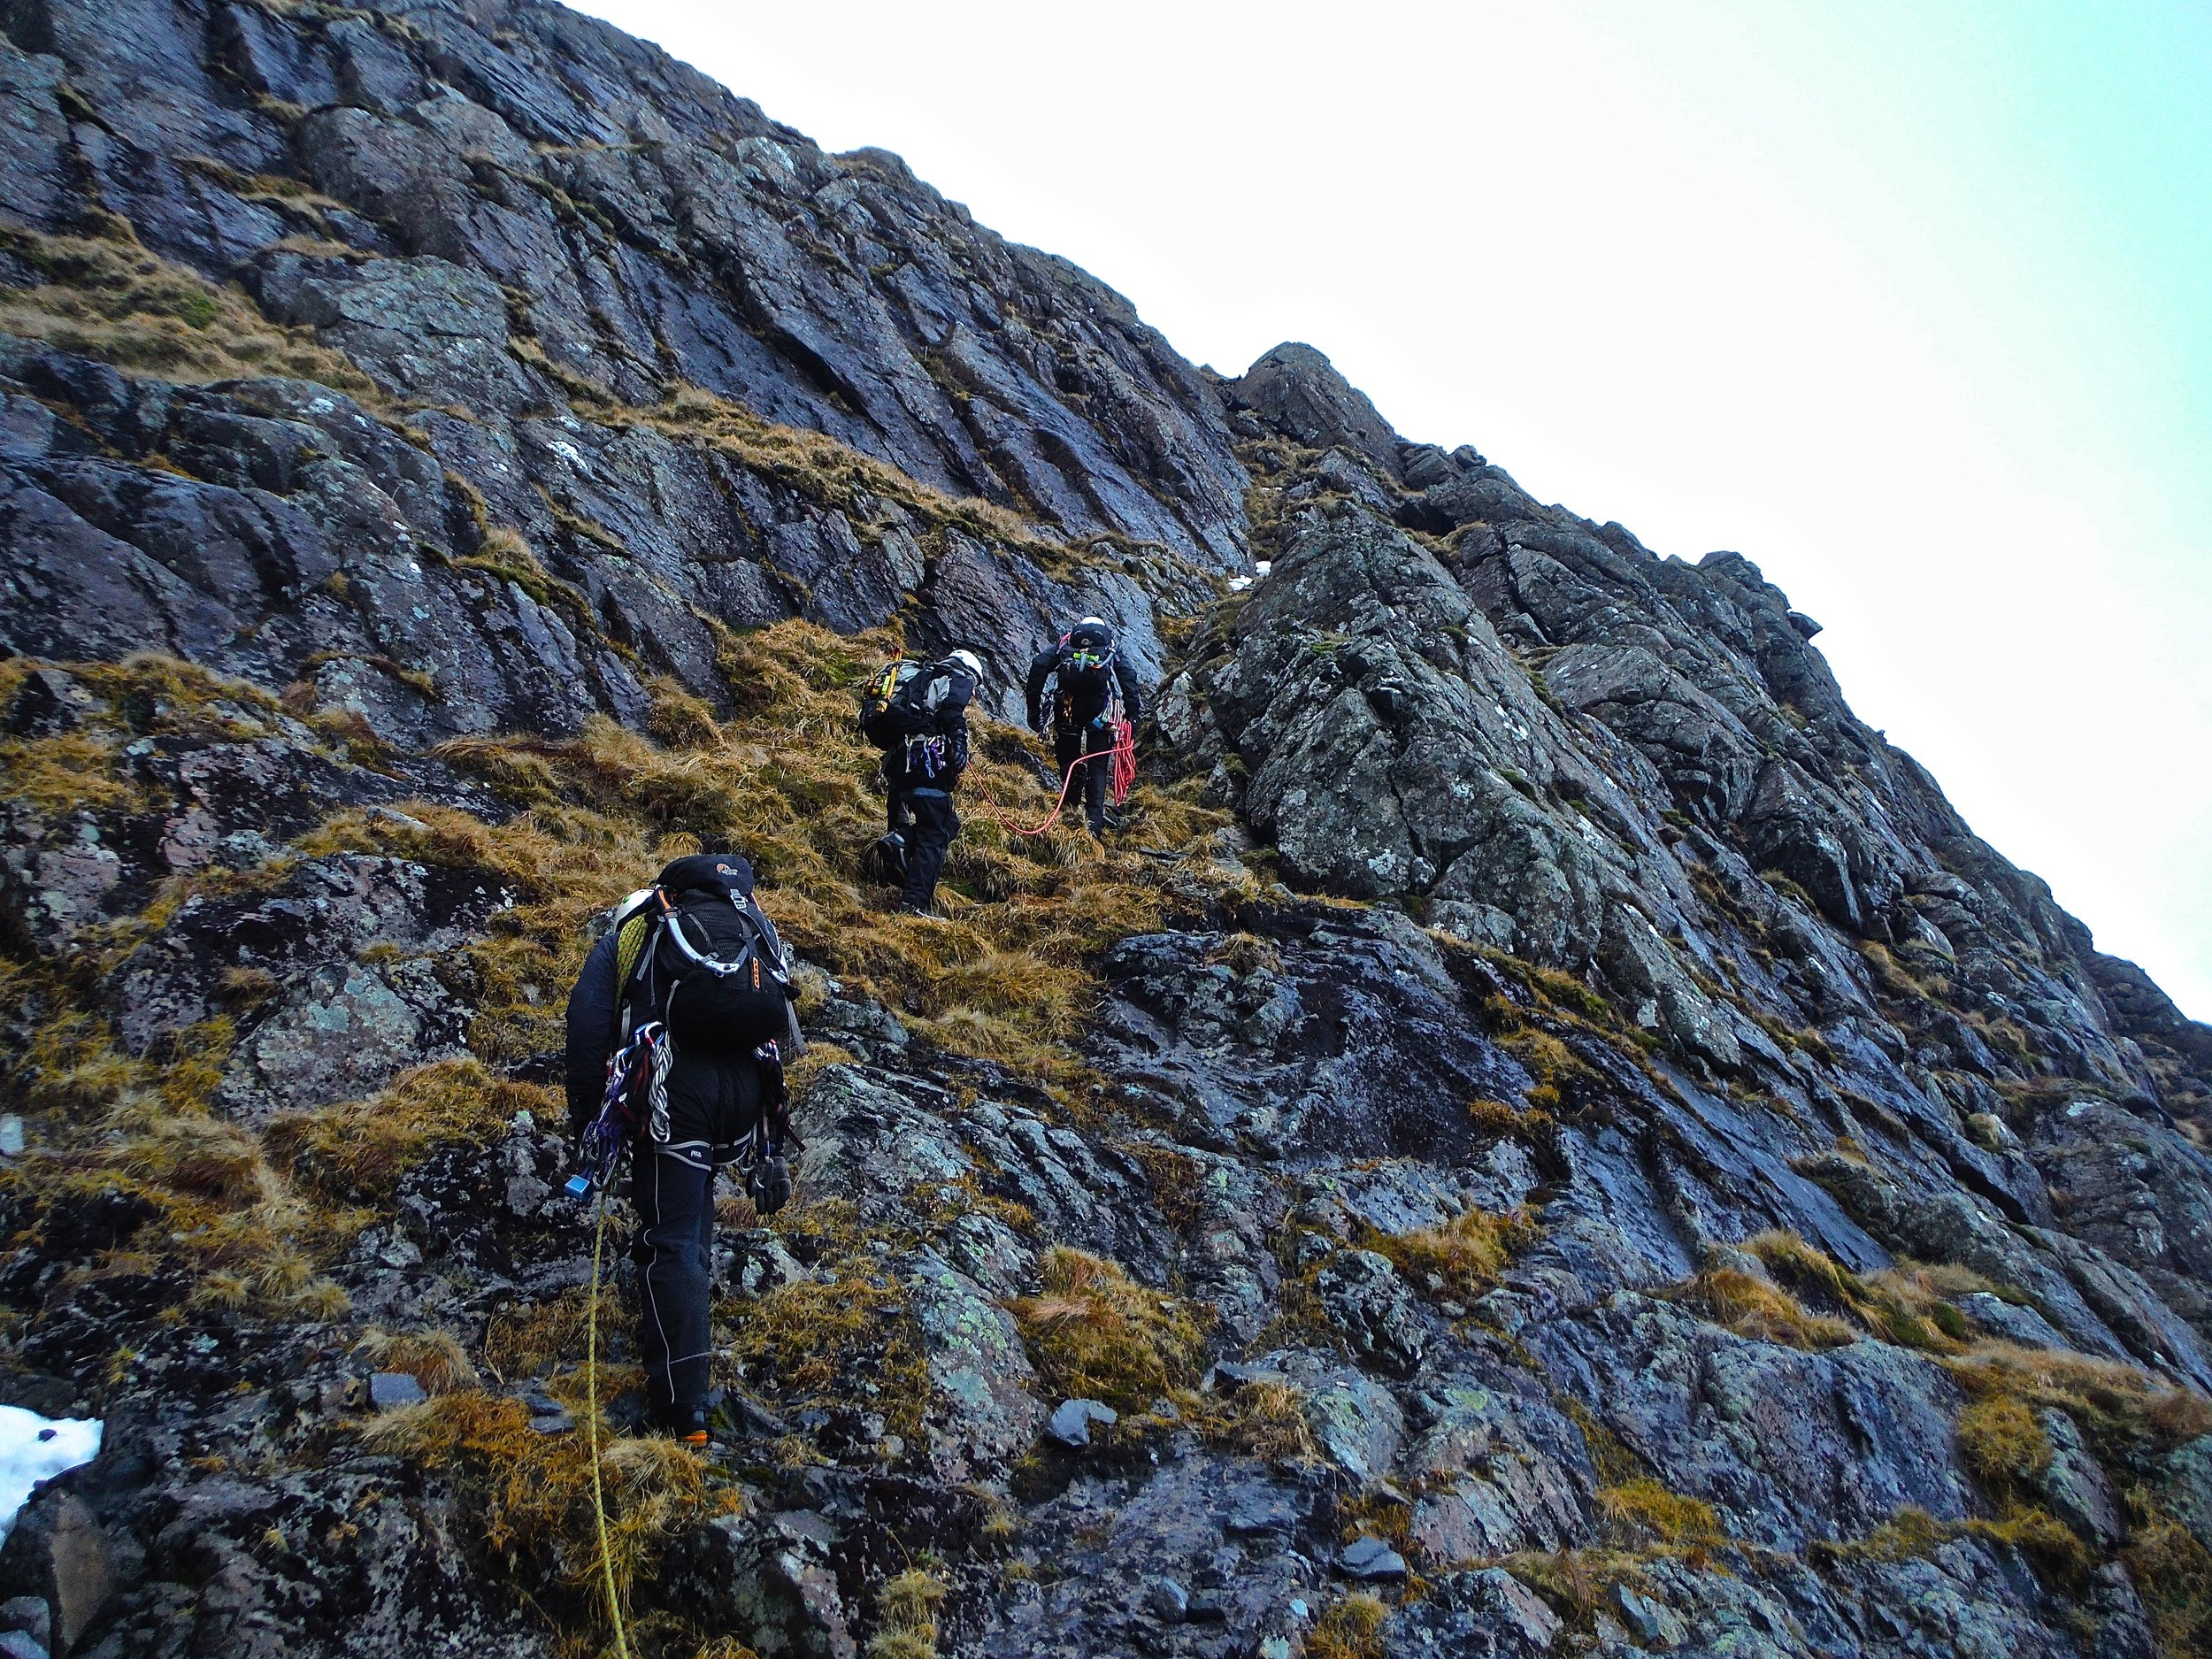 Approaching the start of Castle Ridge a winter grade 3 route in somewhat summery conditions